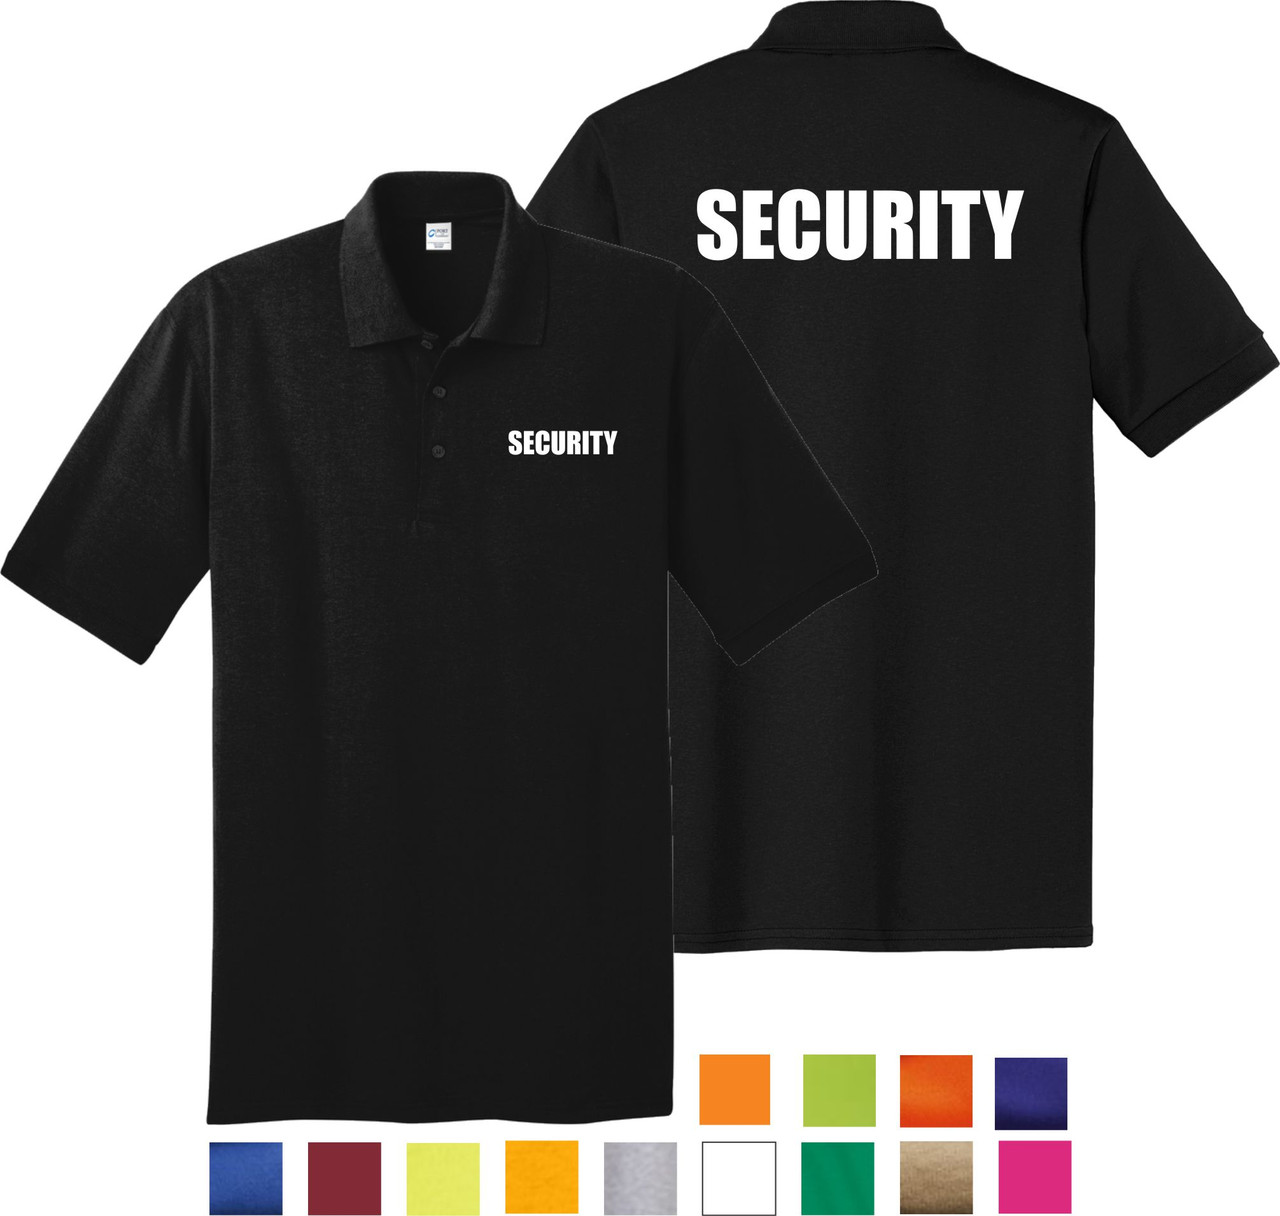 Security Polo.  Make your Security Officer stand out among the crowd in the Polo Shirt.   Security  Polo Shirts available in a variety of colors and  sizes  small - 6X.